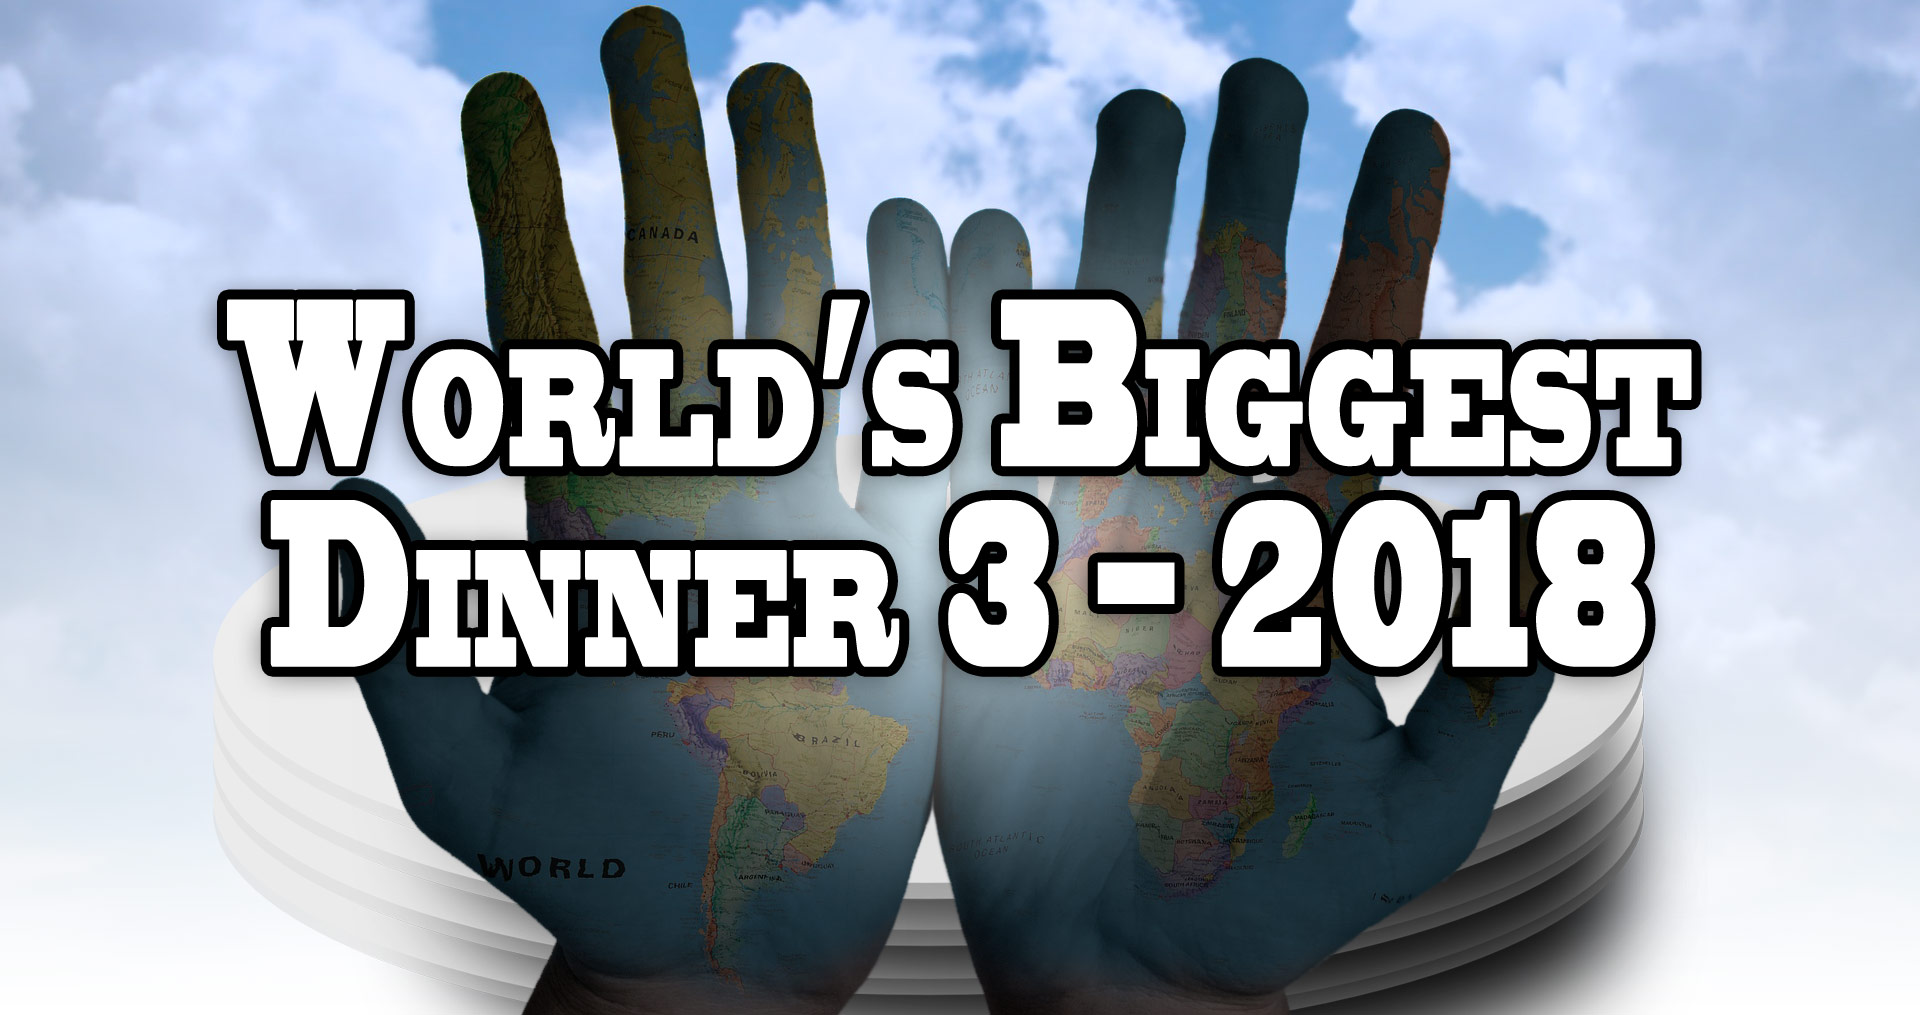 WorldsBiggestDinnerLogoBlurred32018